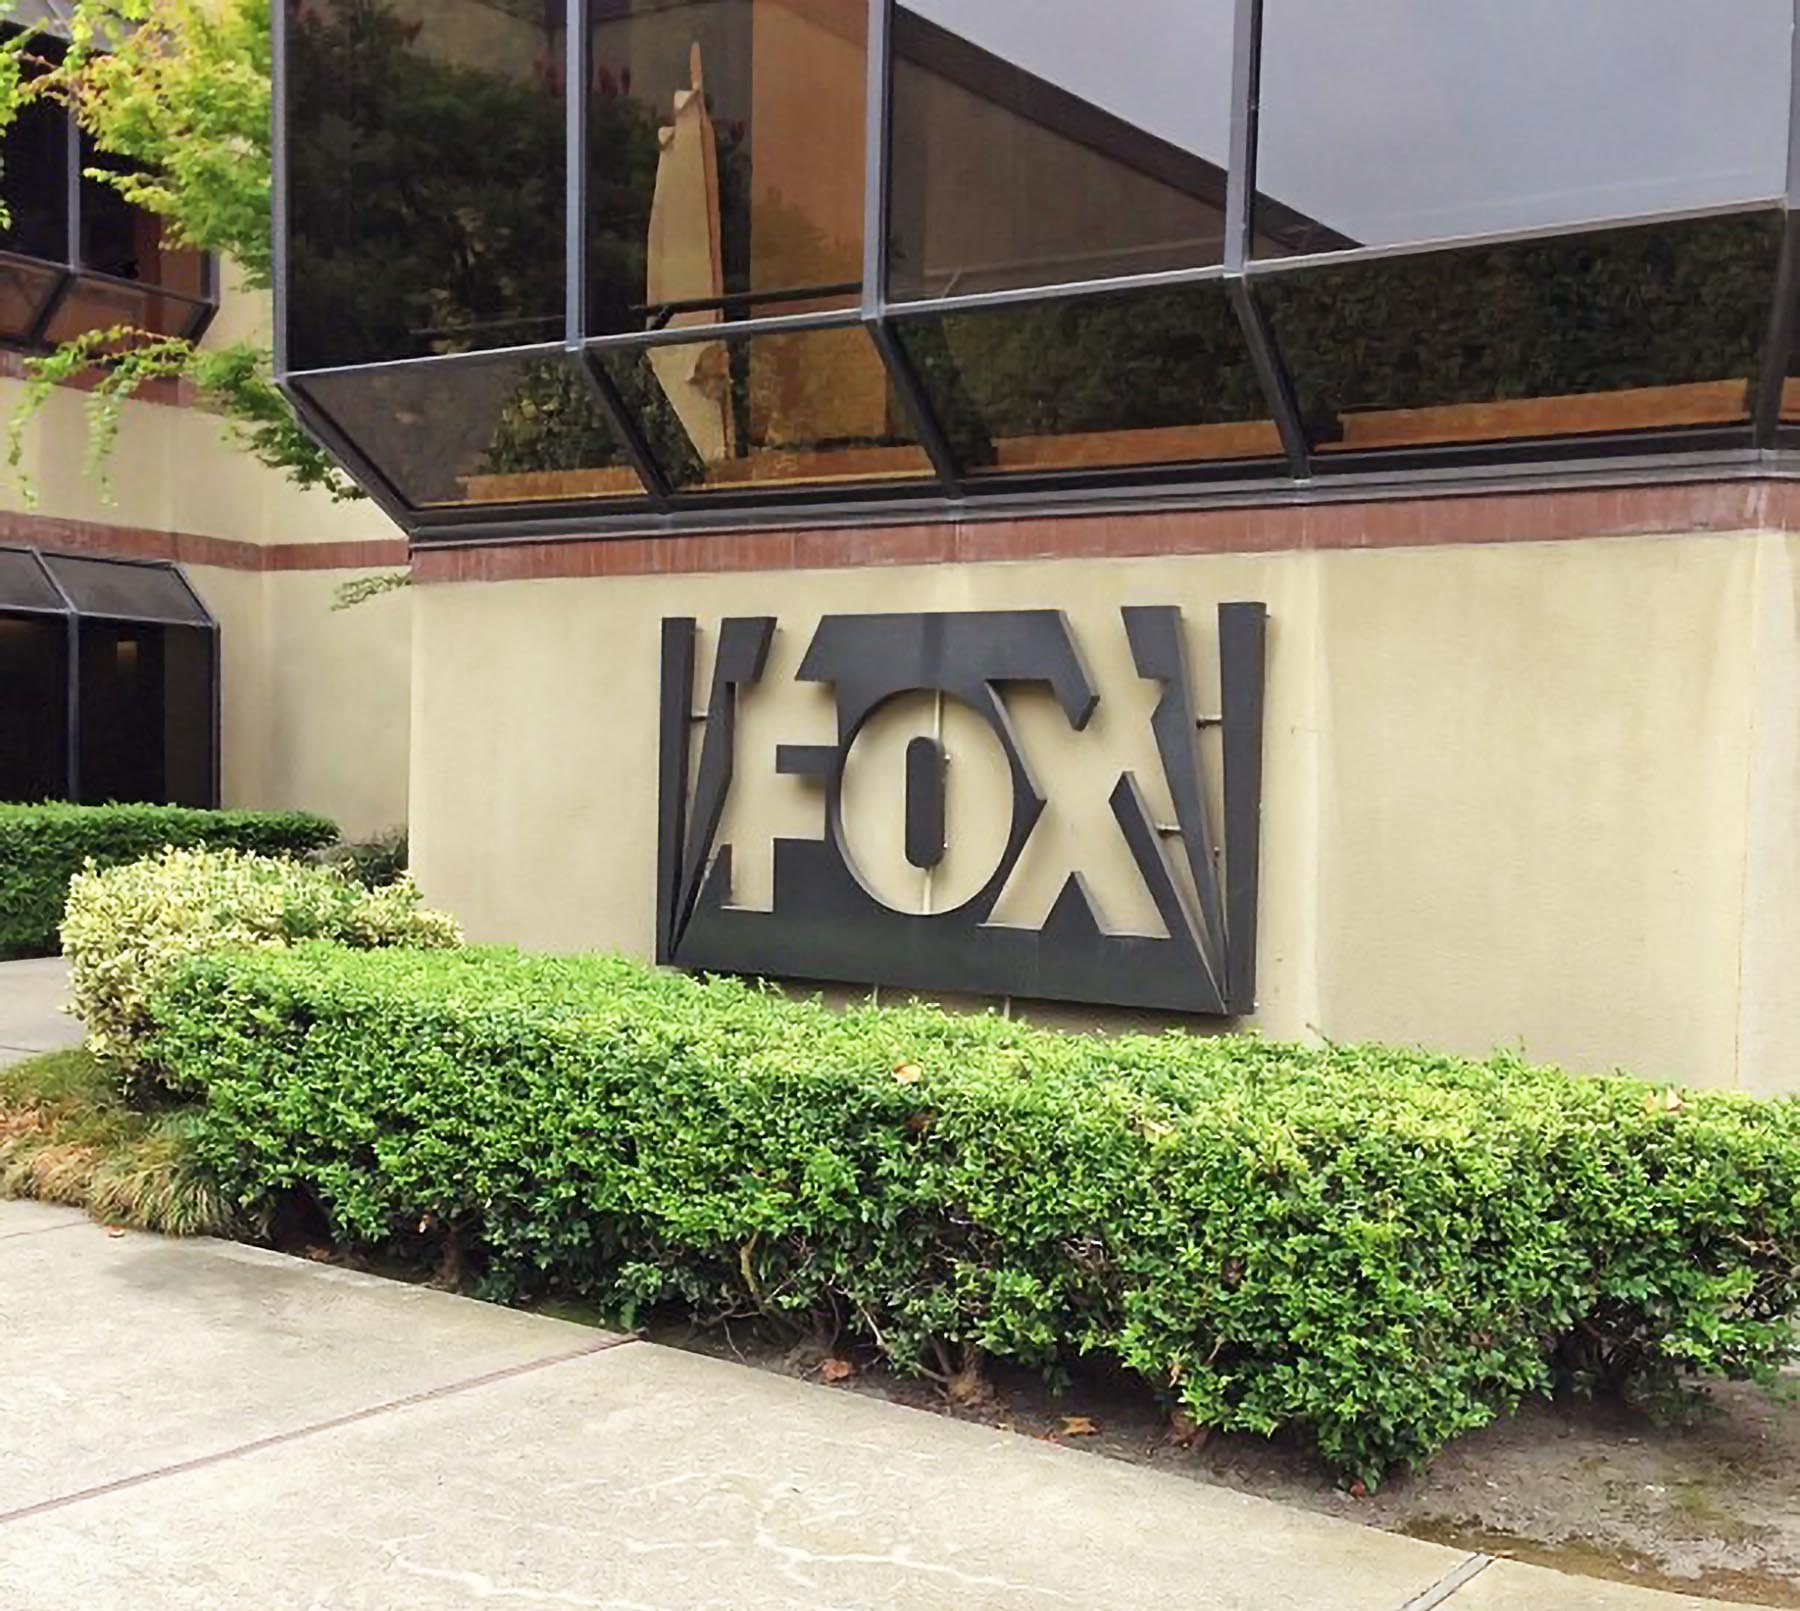 KTVU Fox Office Building, Jack London Square Oakland, CA